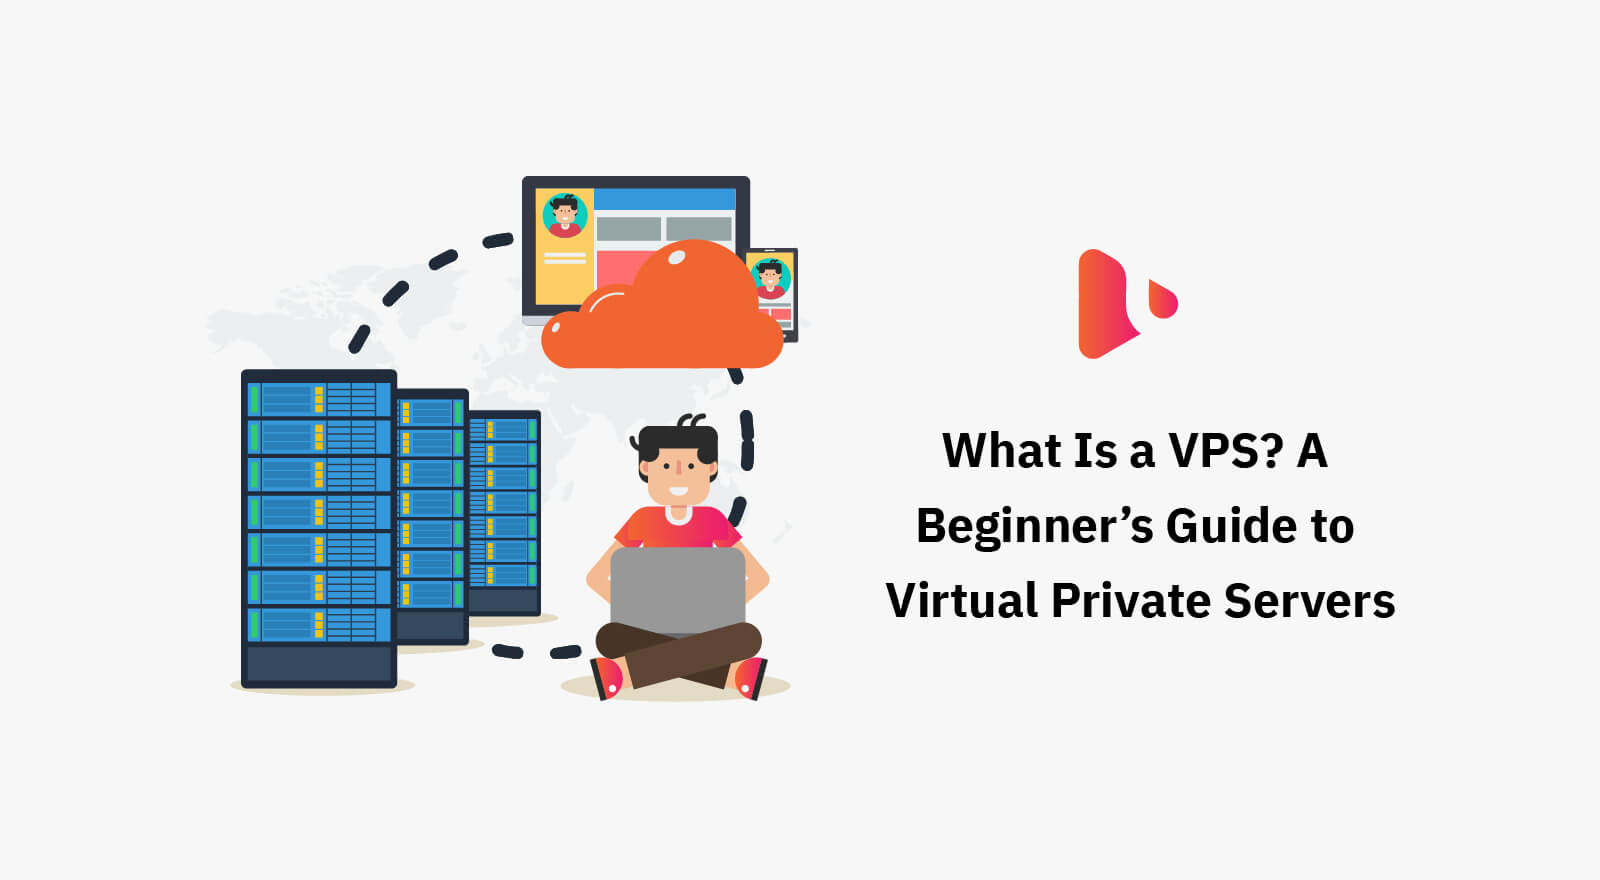 What Is a VPS? A Beginner's Guide to Virtual Private Servers